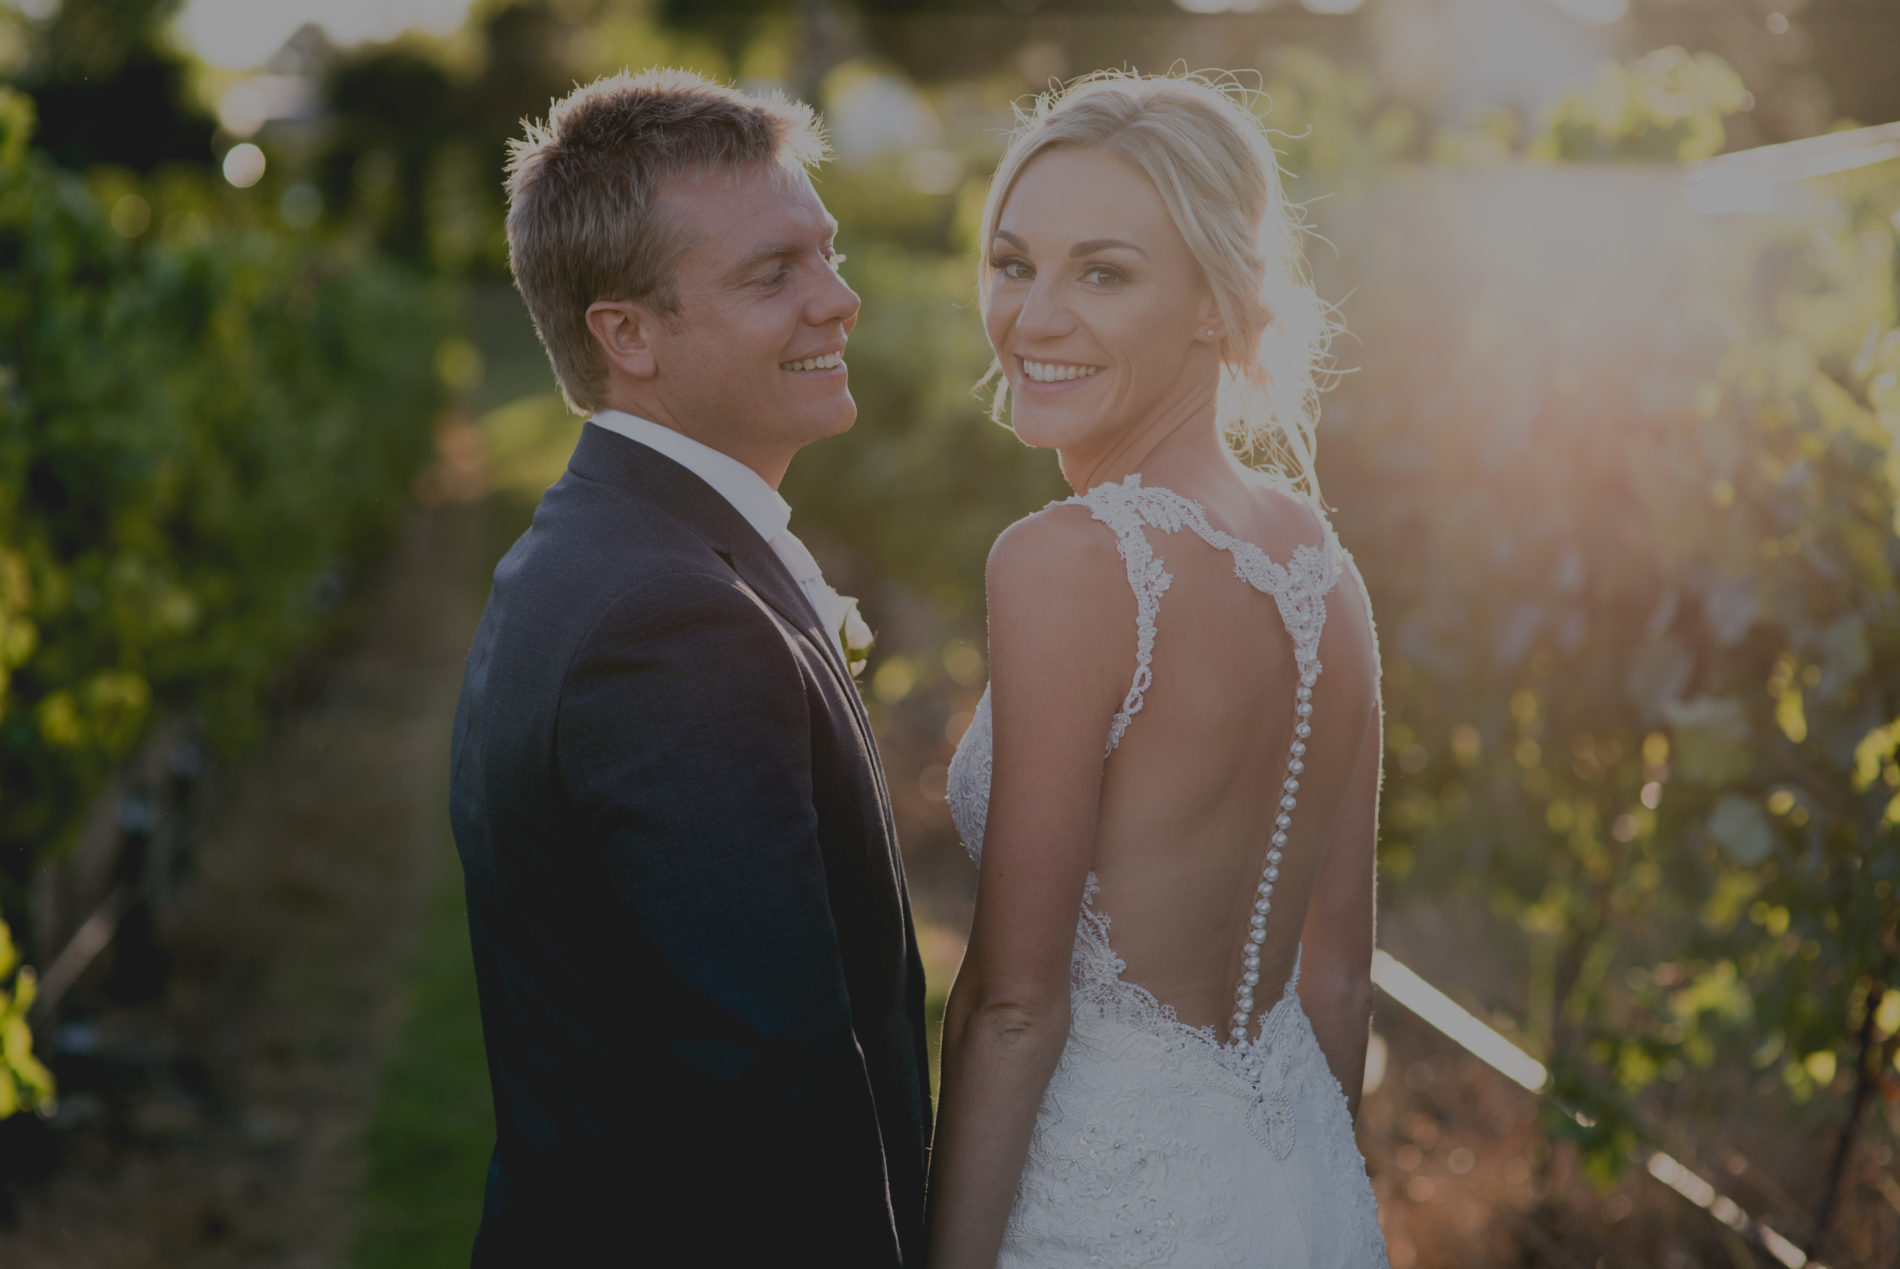 Wedding Slide – couple in vineyard